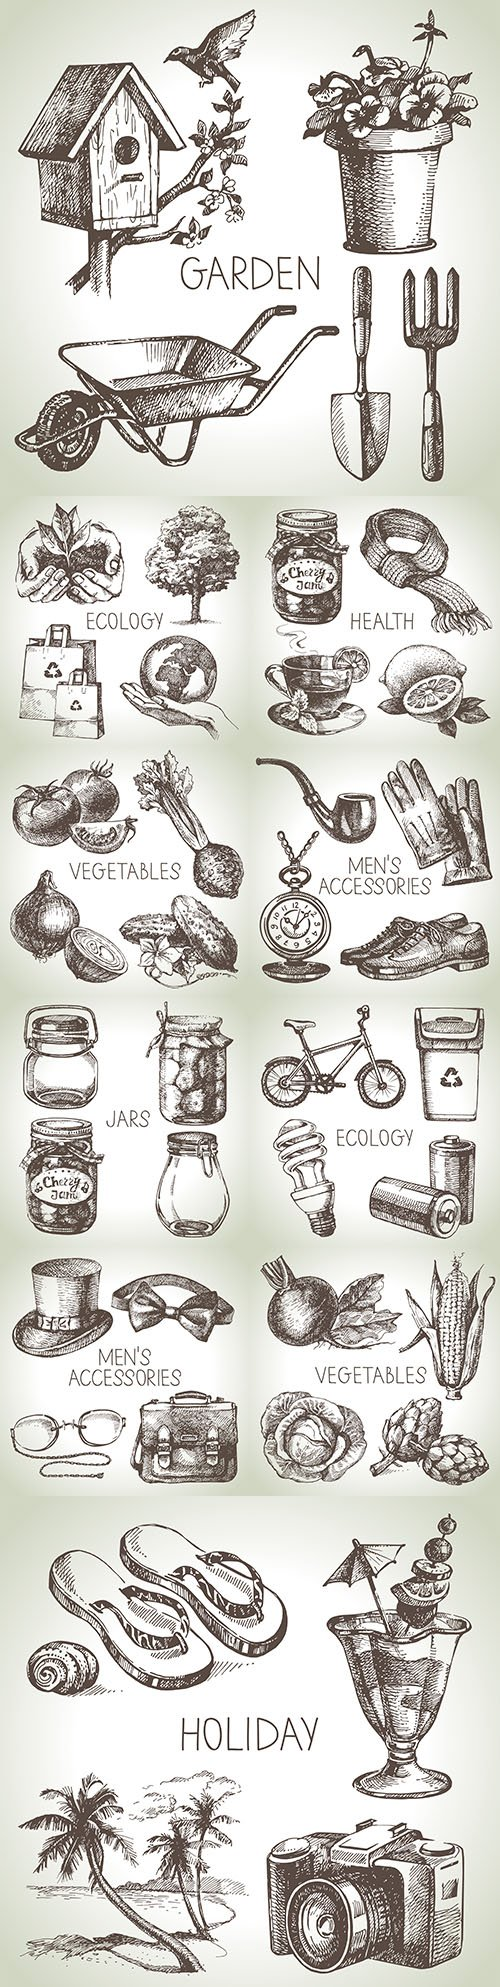 Sketch various accessories and objects design illustration